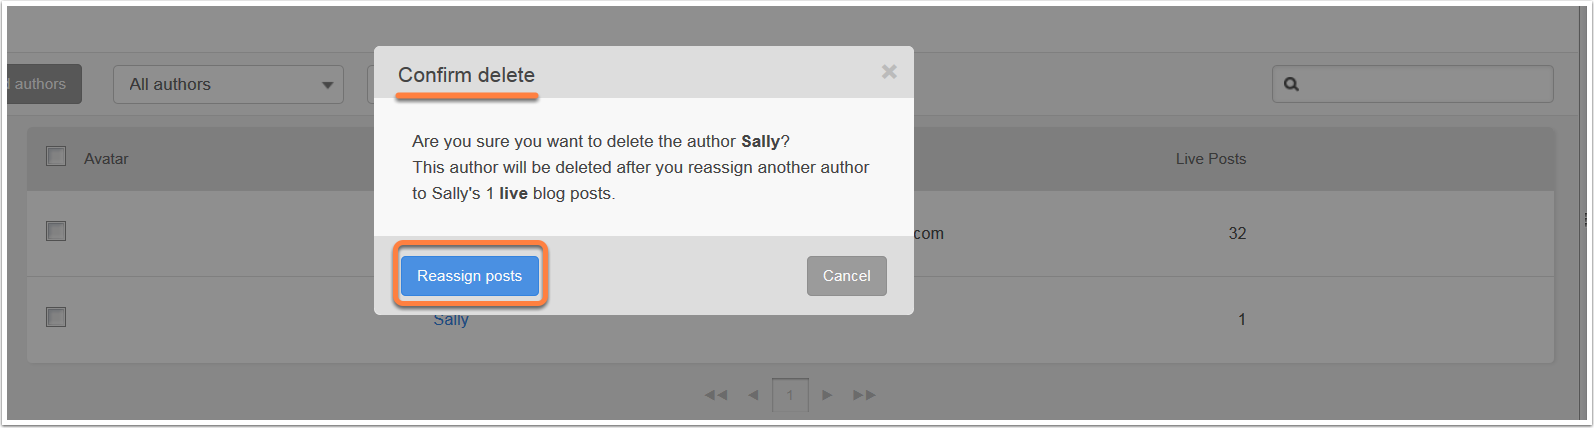 confirm-delete-author.png